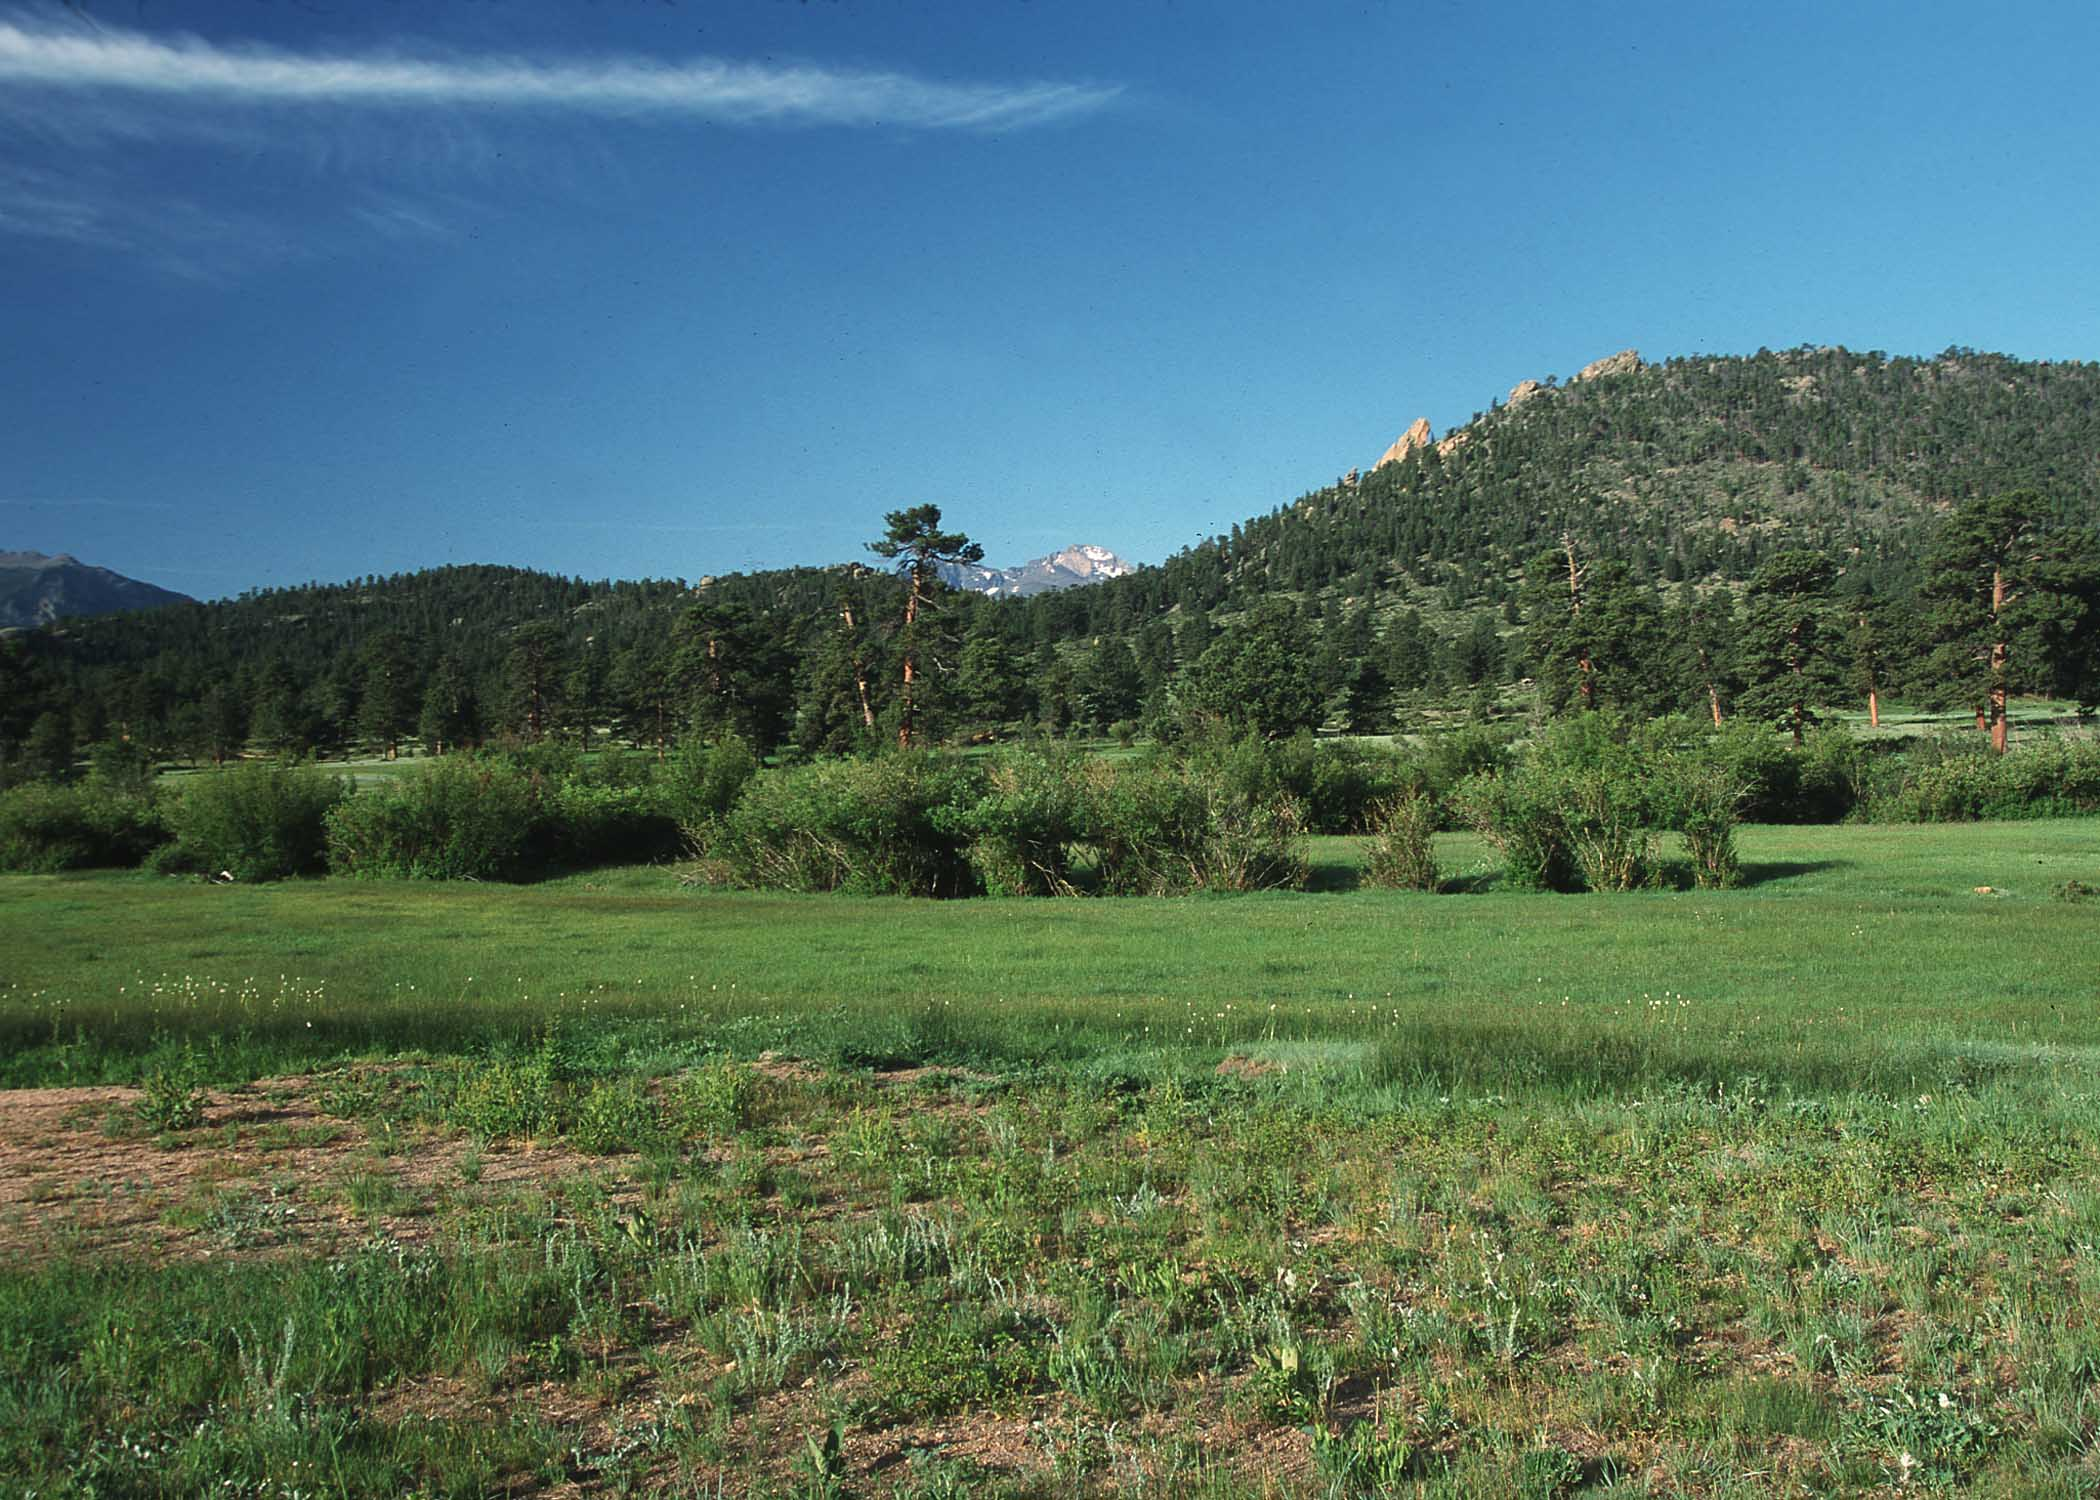 Picture of Rangeland